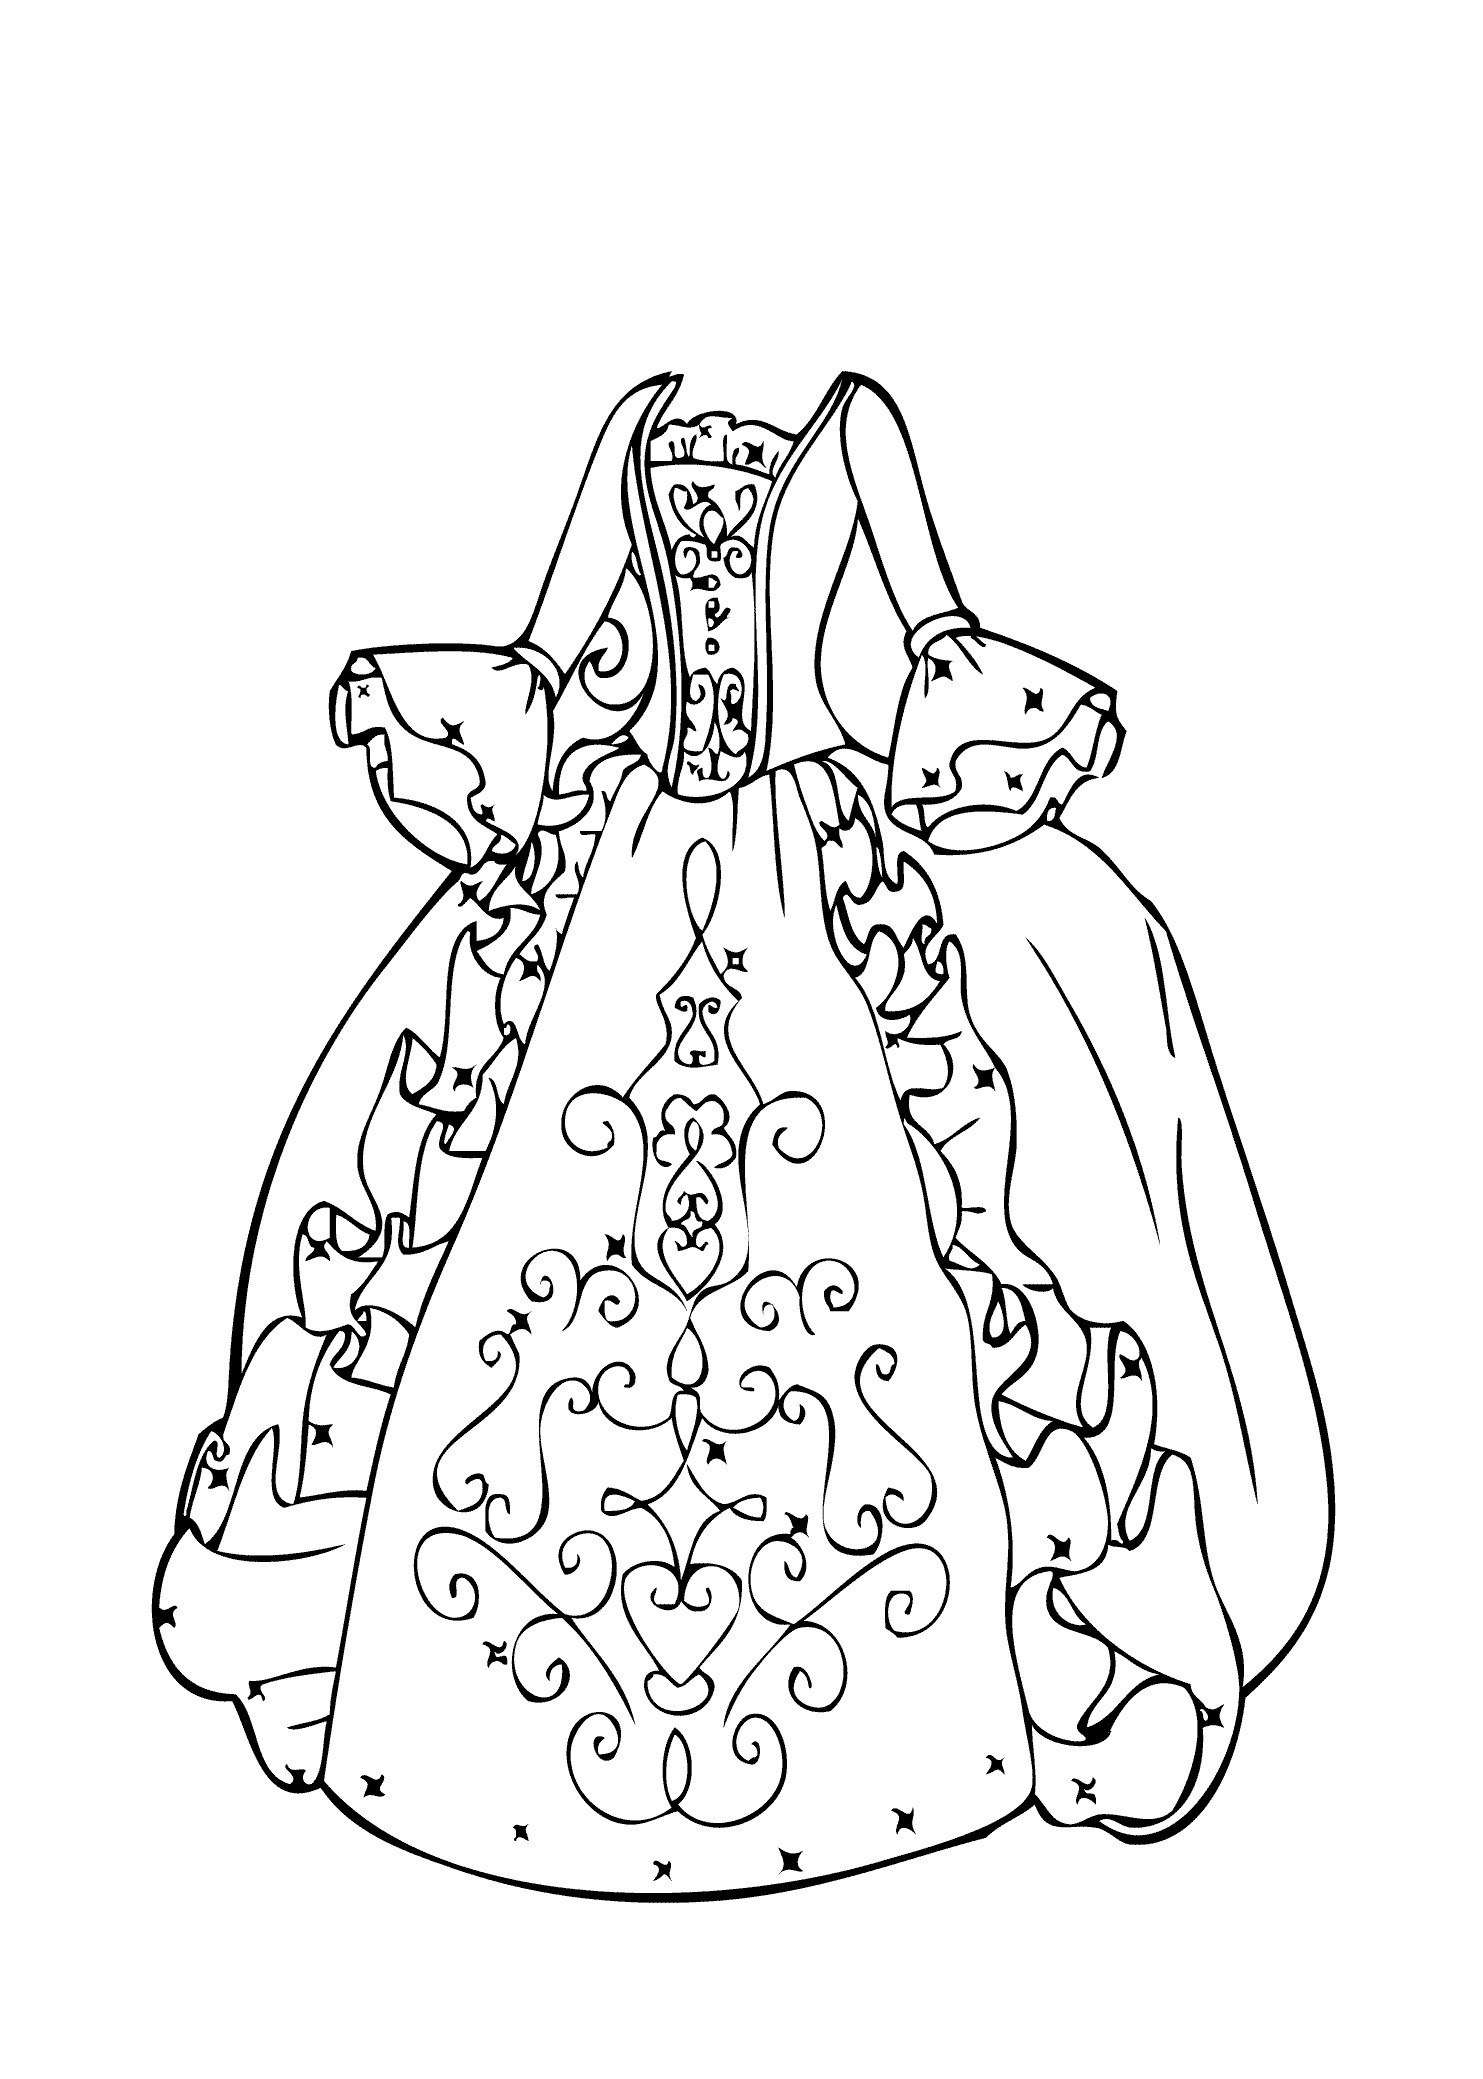 Gruselige Monster Ausmalbilder Genial Ball Gown Coloring Page for Girls Printable Free Einzigartig Böse Fotos